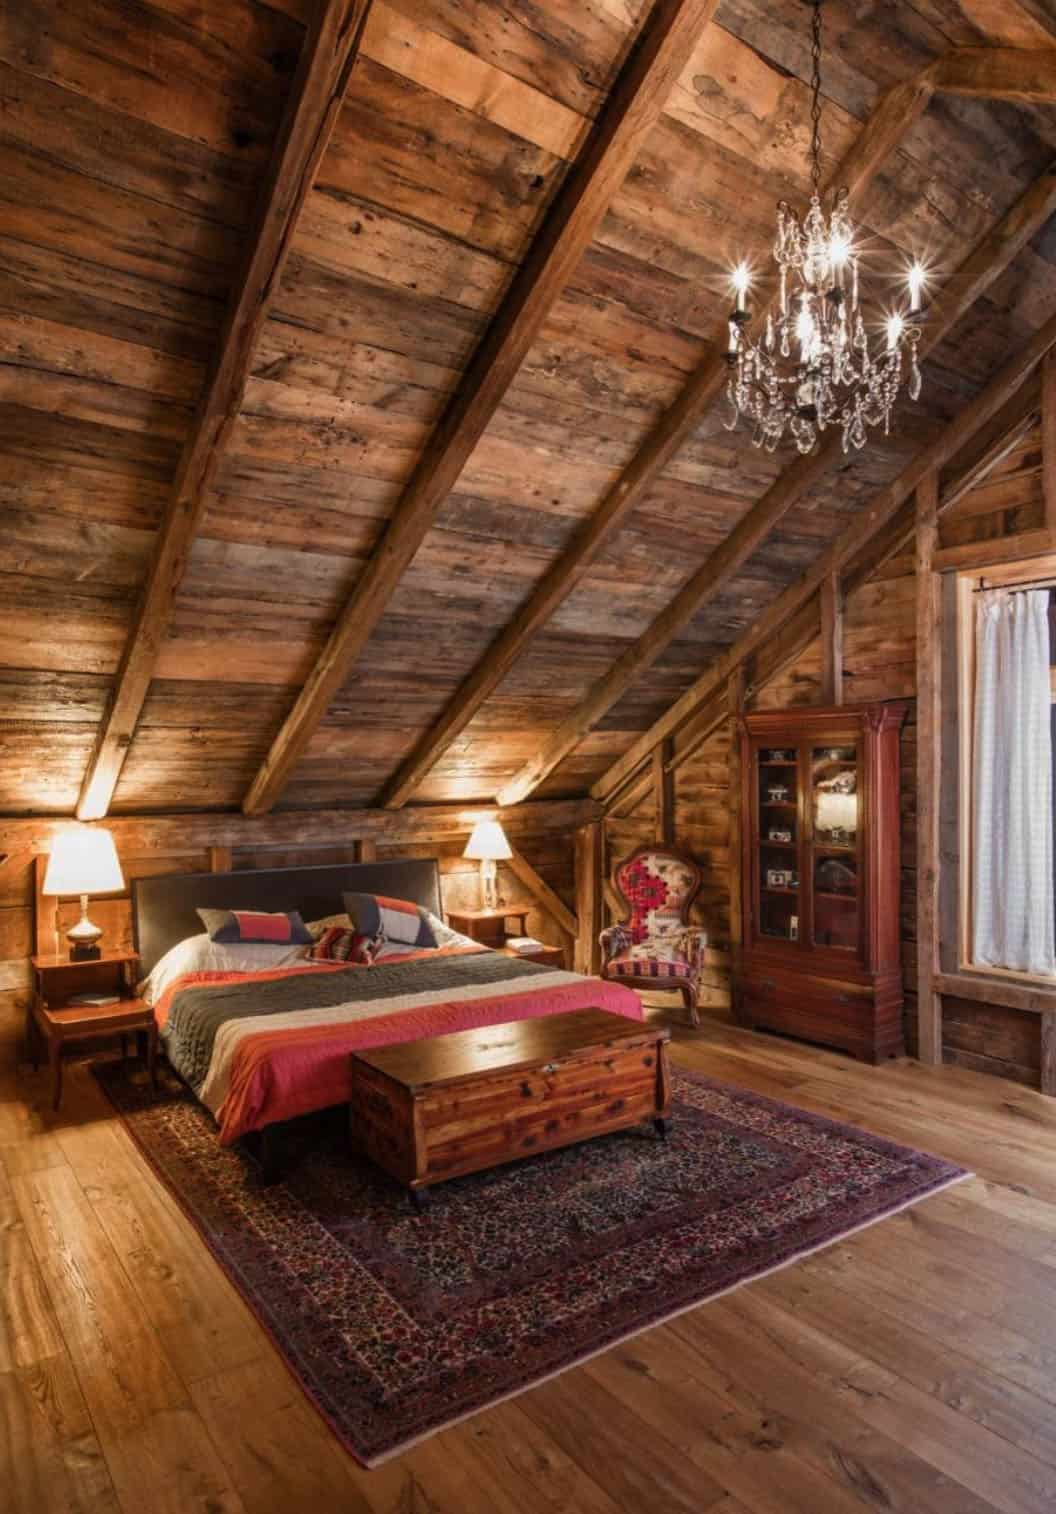 barn-style-bedroom-design